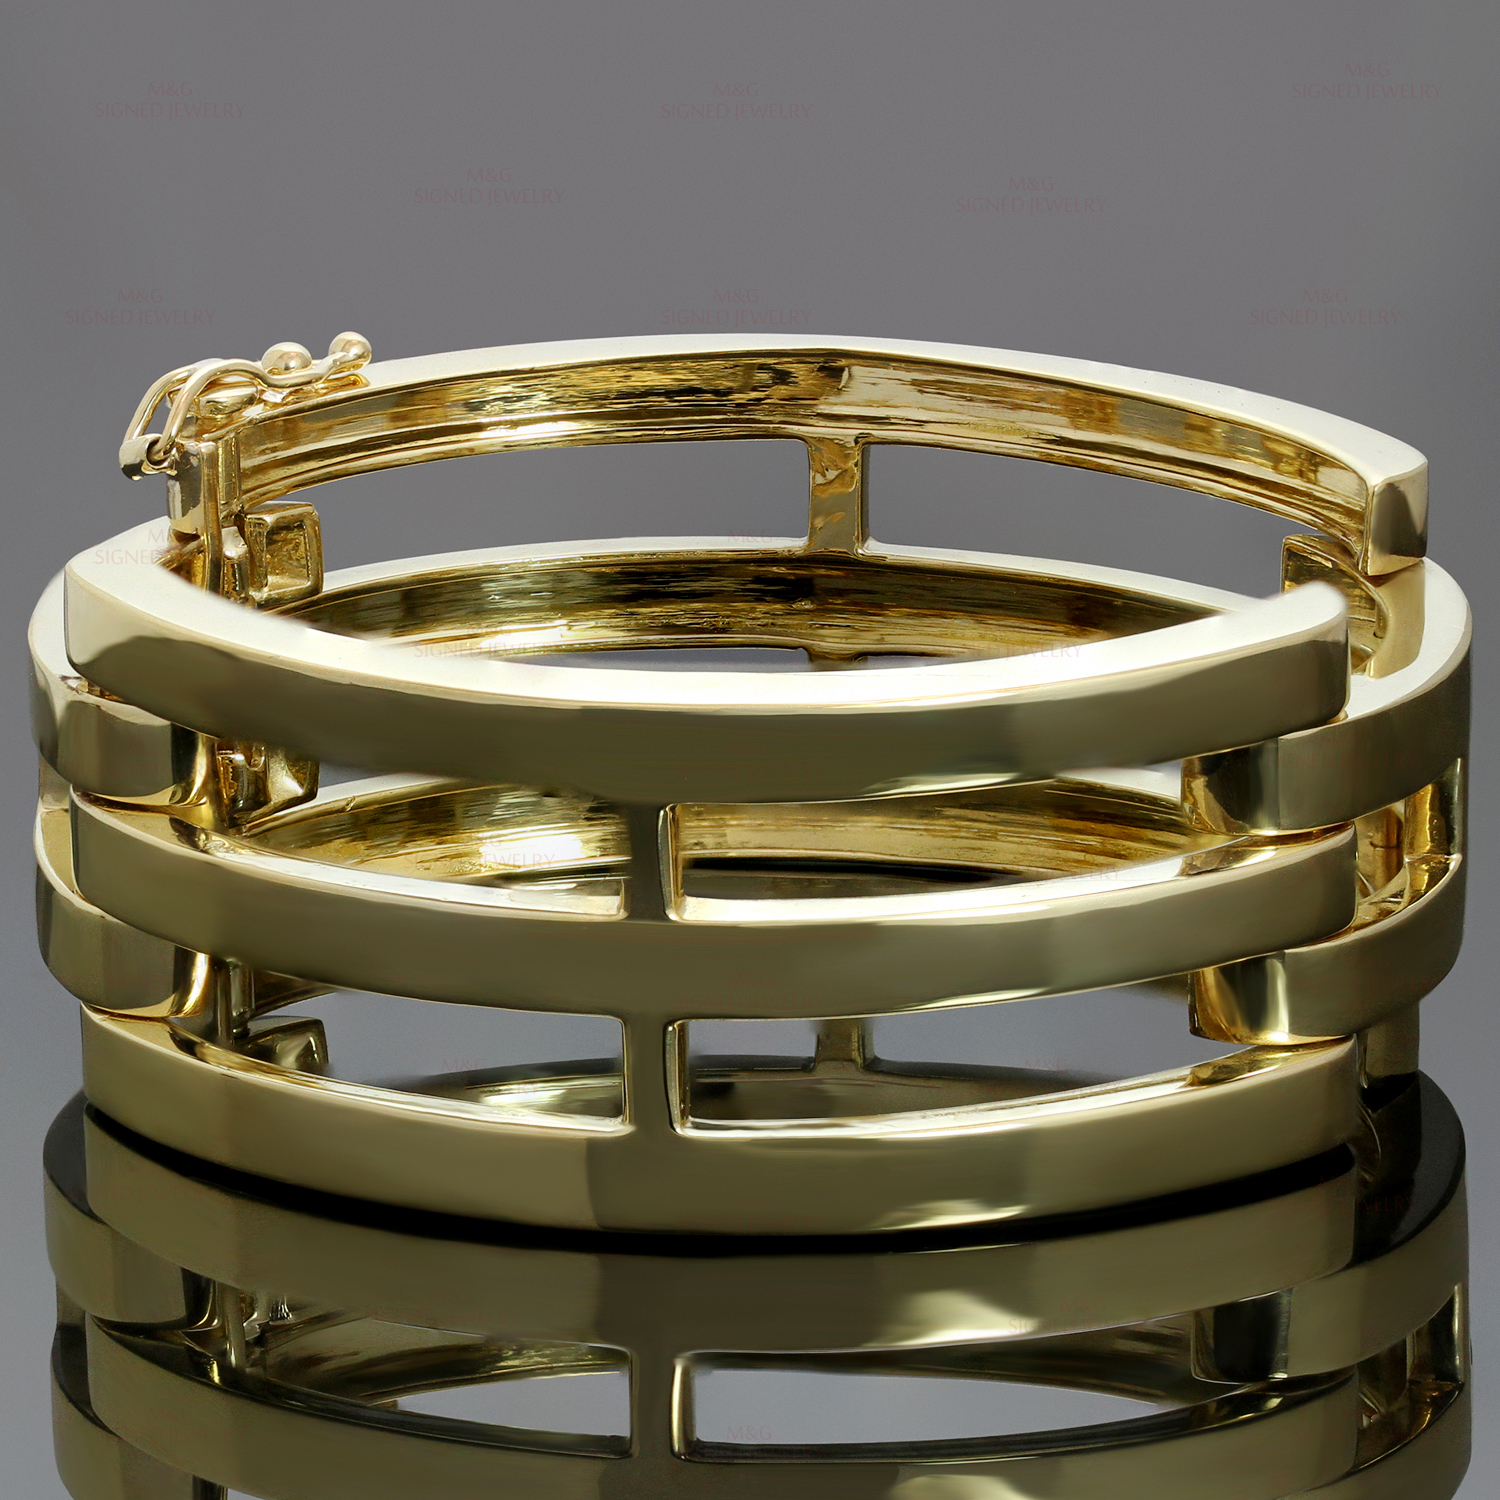 TIFFANY & CO. 18k Yellow Gold Bangle Bracelet